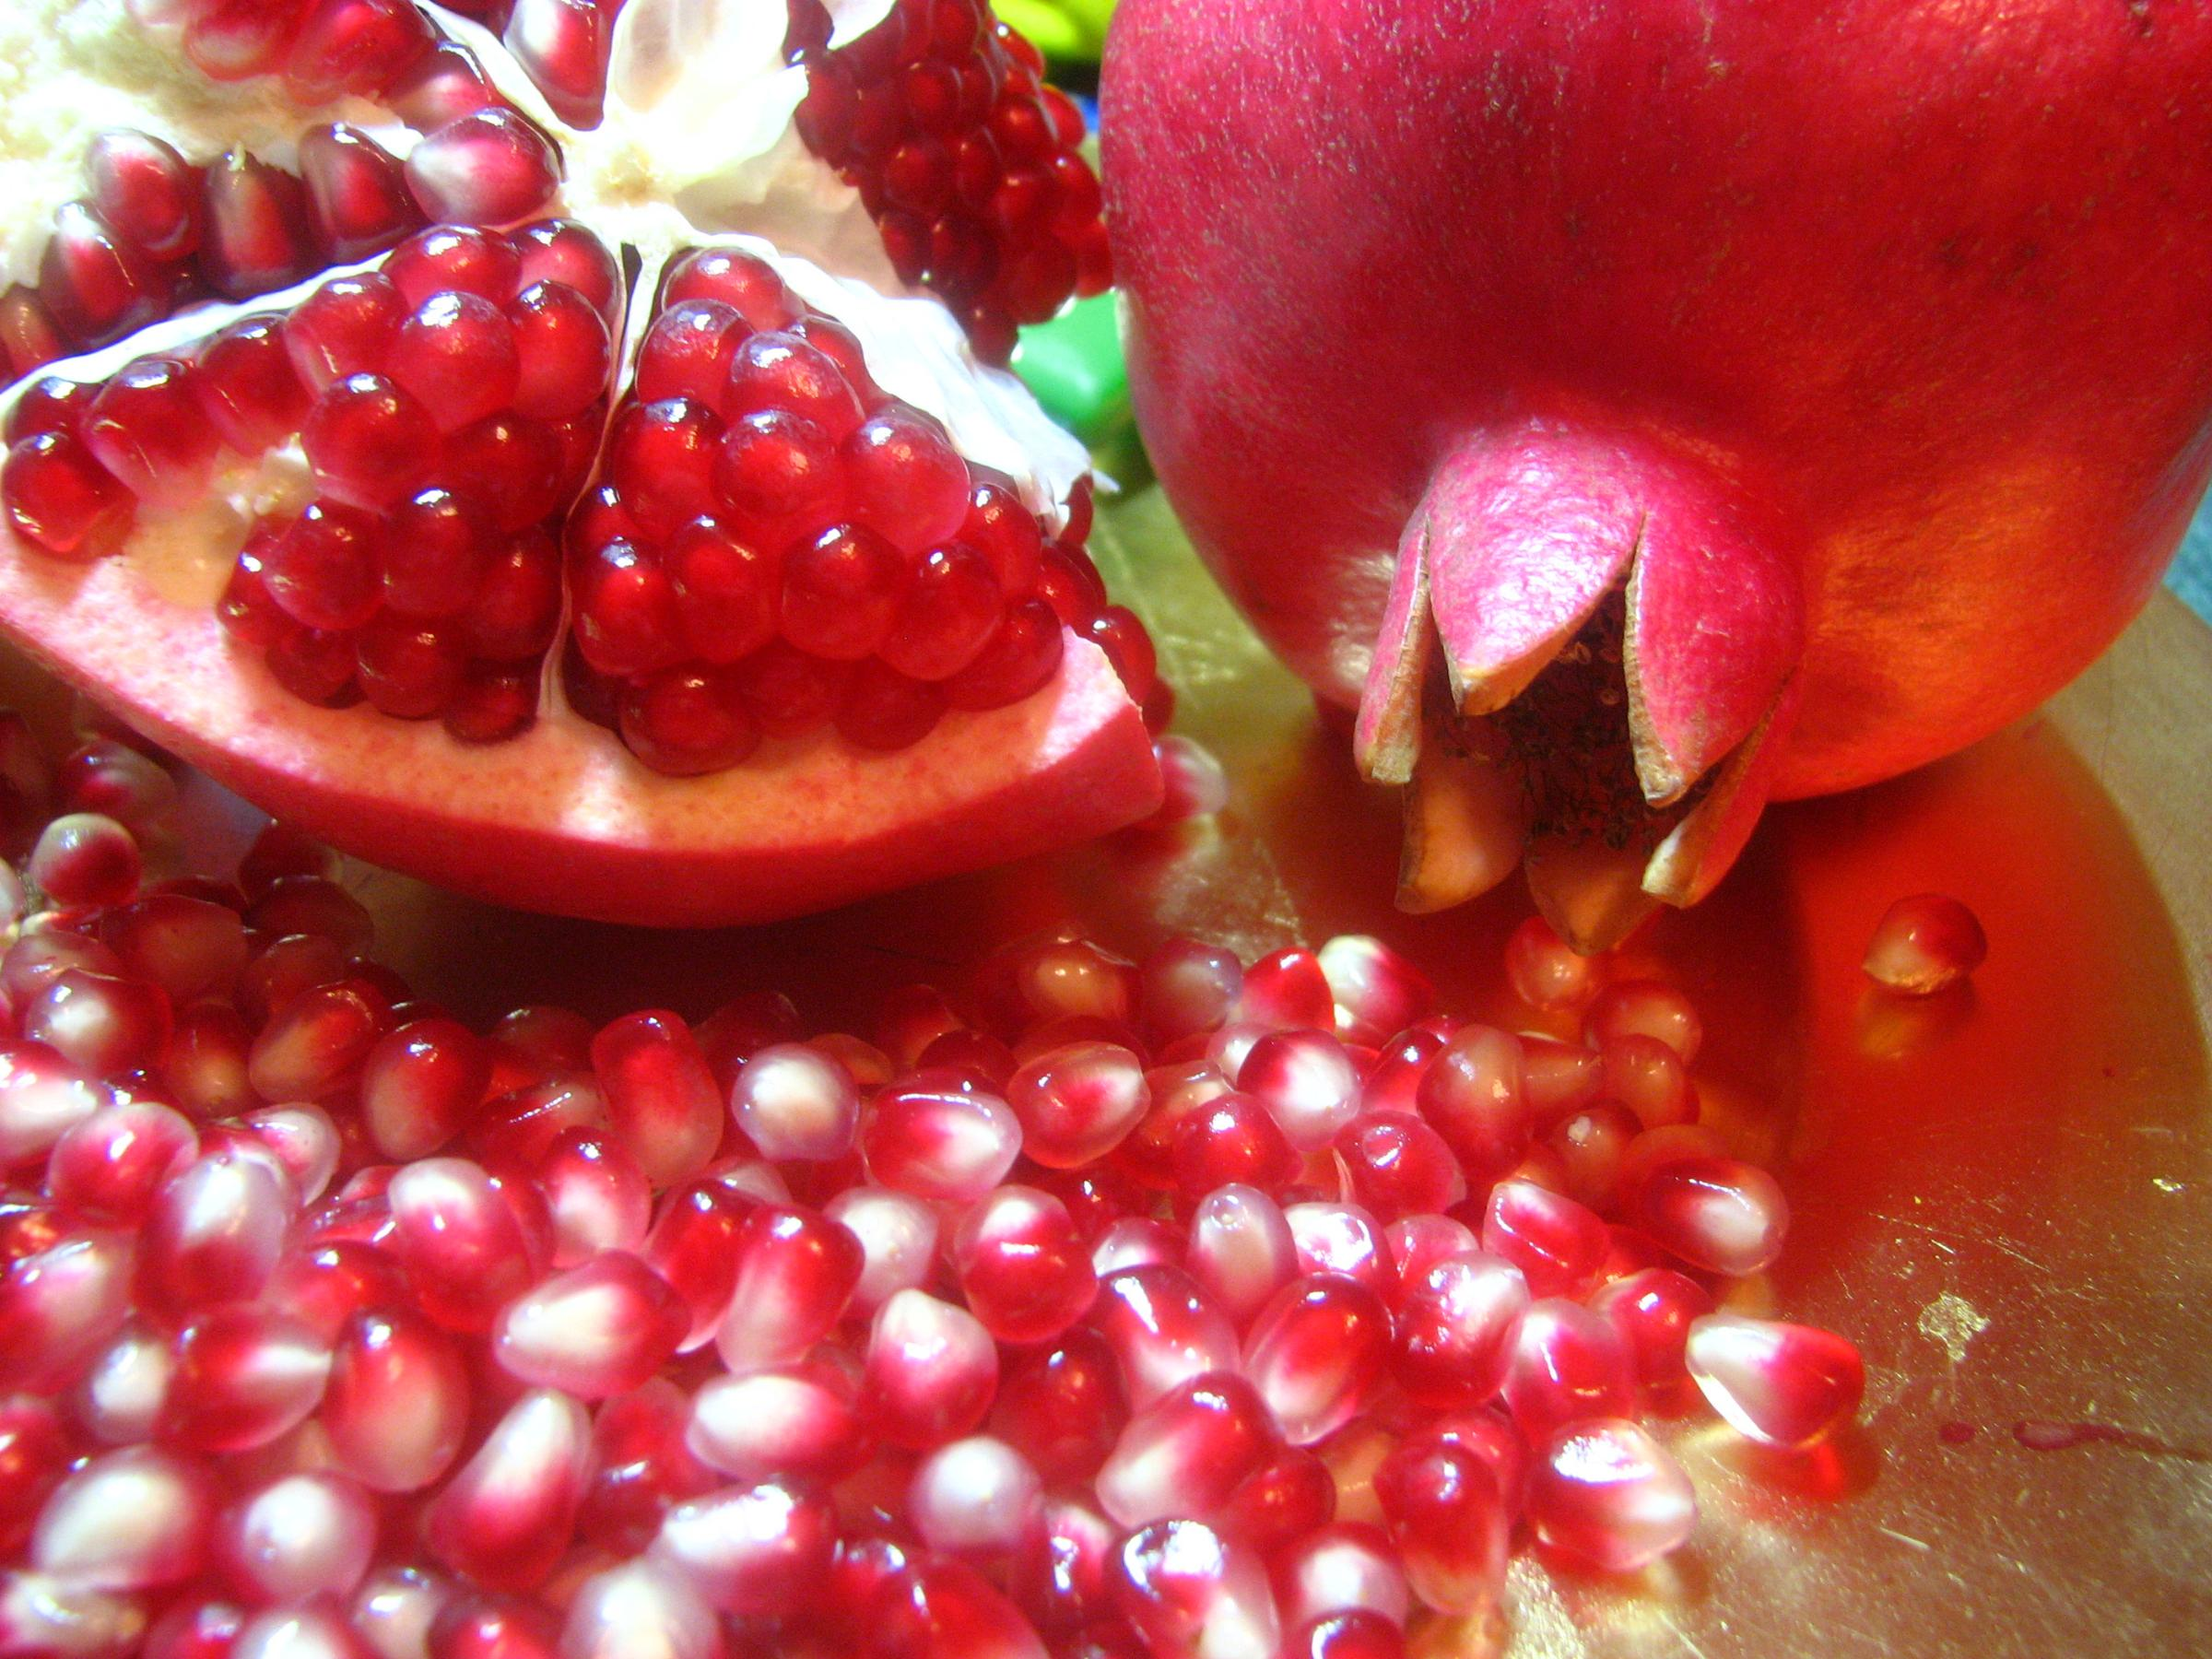 Fruit hd wallpaper - Red Fruit Hd Wallpapers Page 0 High Resolution Wallarthd Com